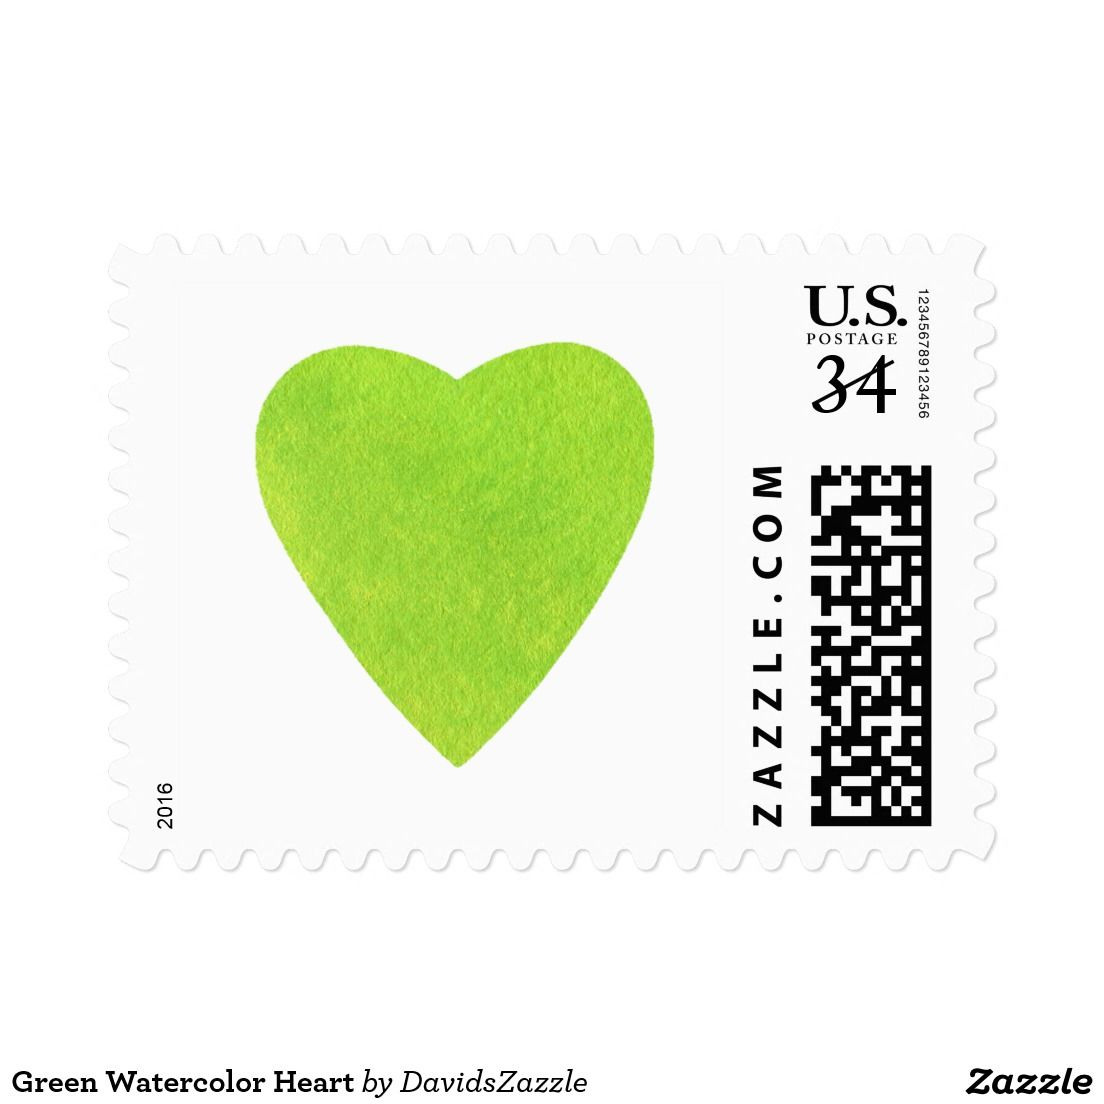 Green Watercolor Heart Postage Green Watercolor And Watercolor Heart